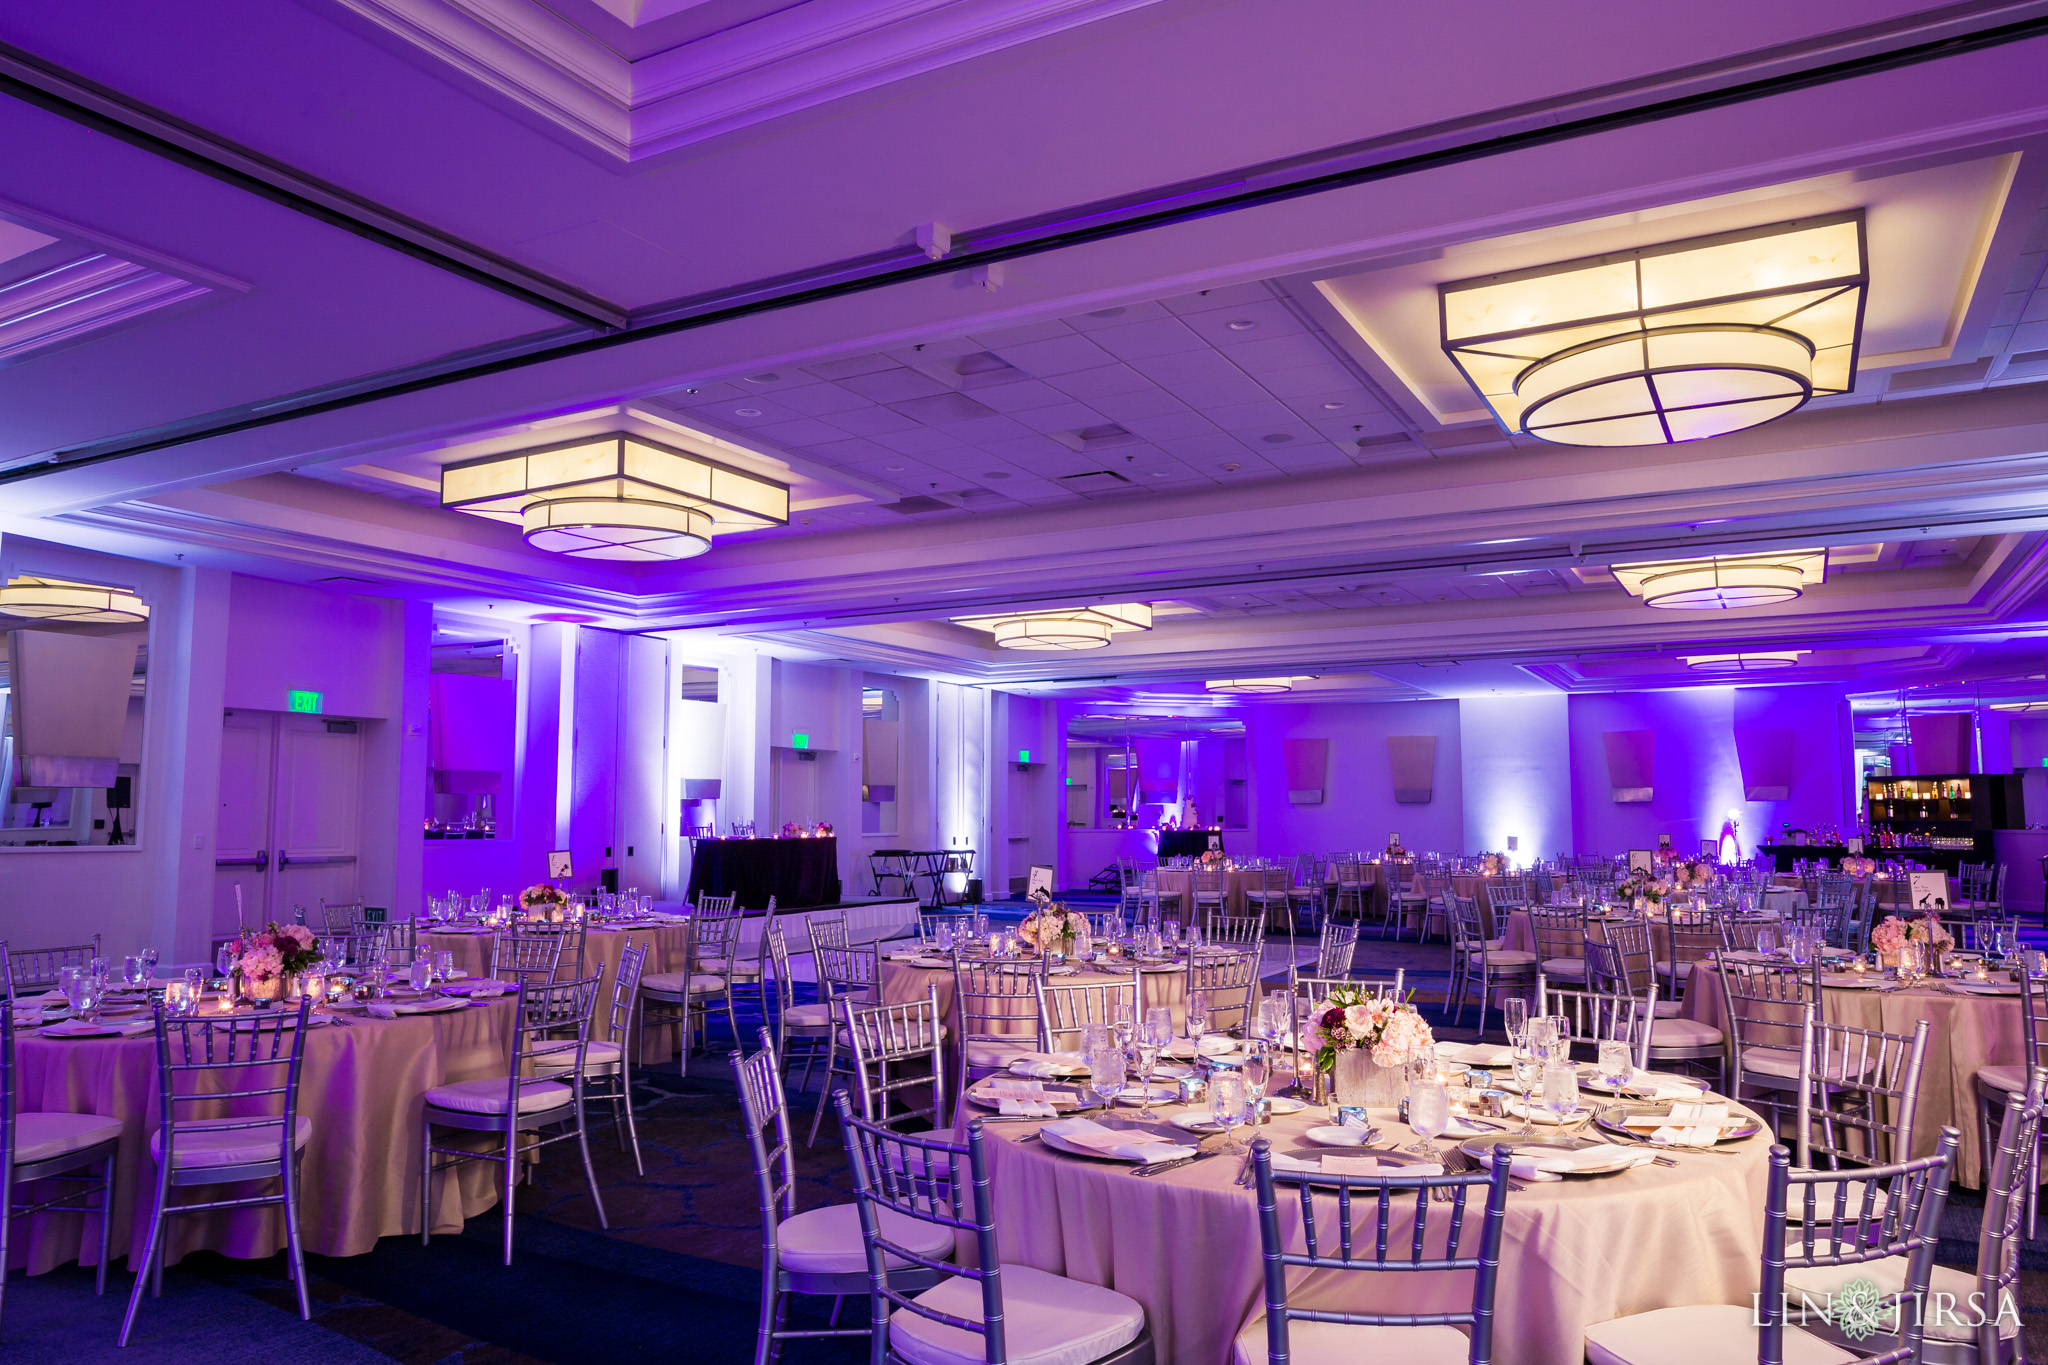 Newport Beach Marriott Wedding Sonia Scott